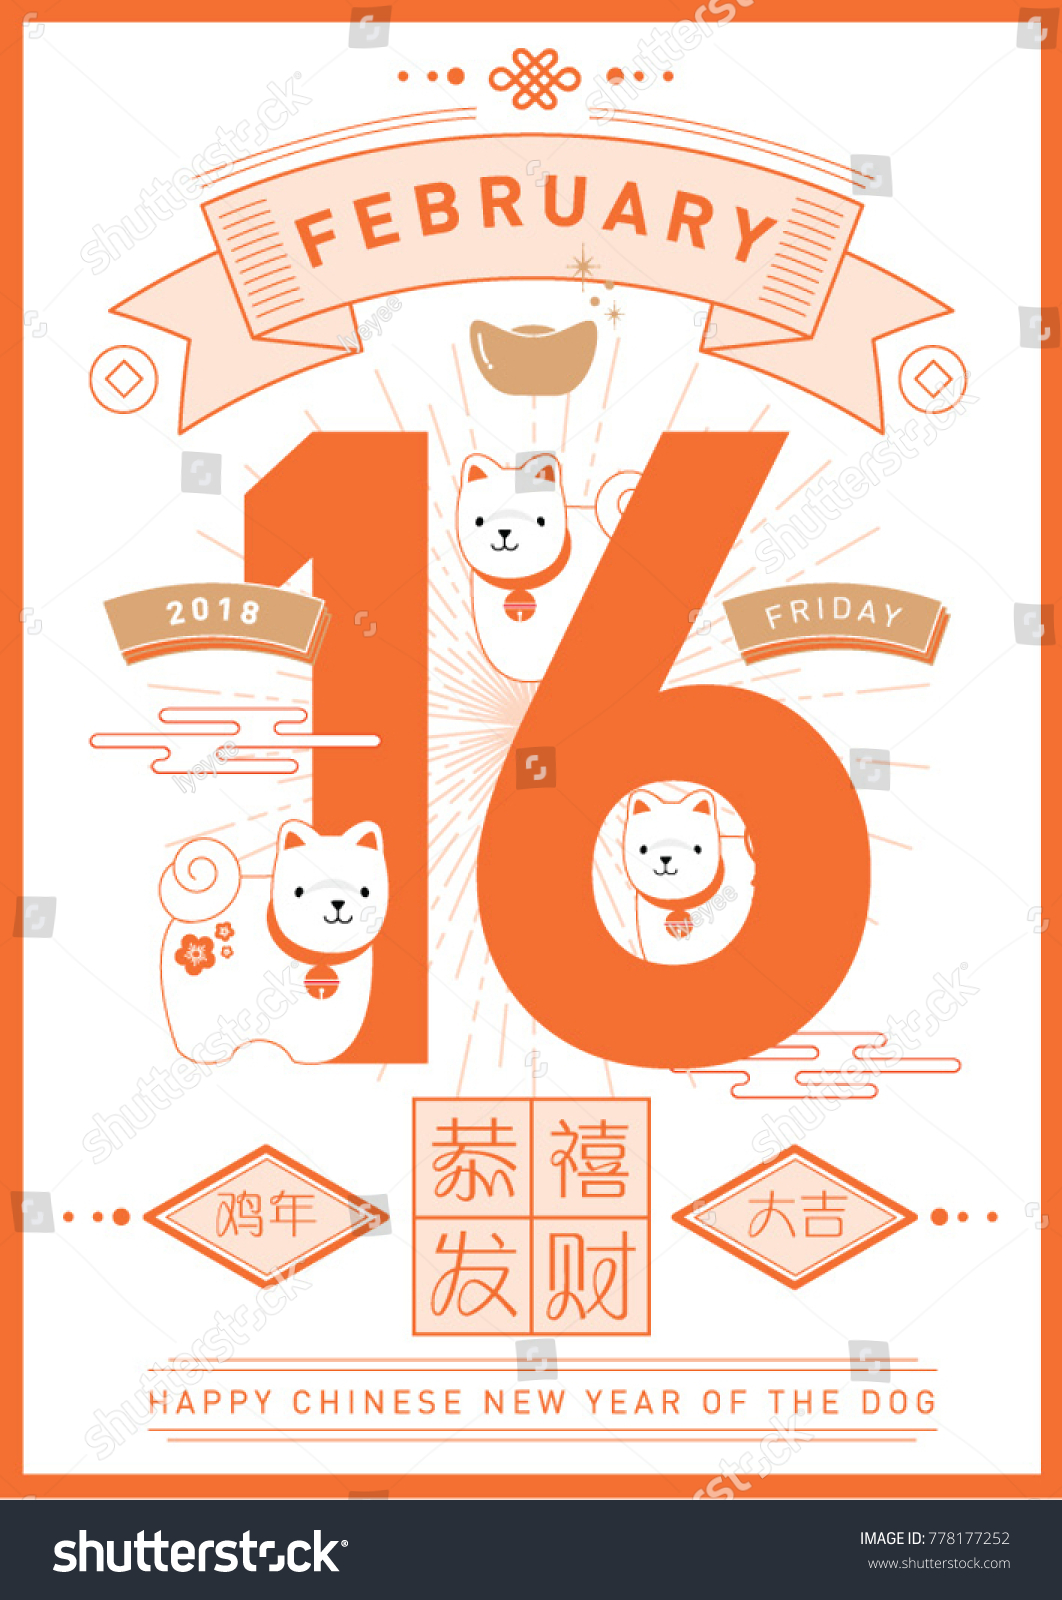 chinese new year calendar greetings template vectorillustration with chinese characters that mean wishing - Chinese New Year Calendar